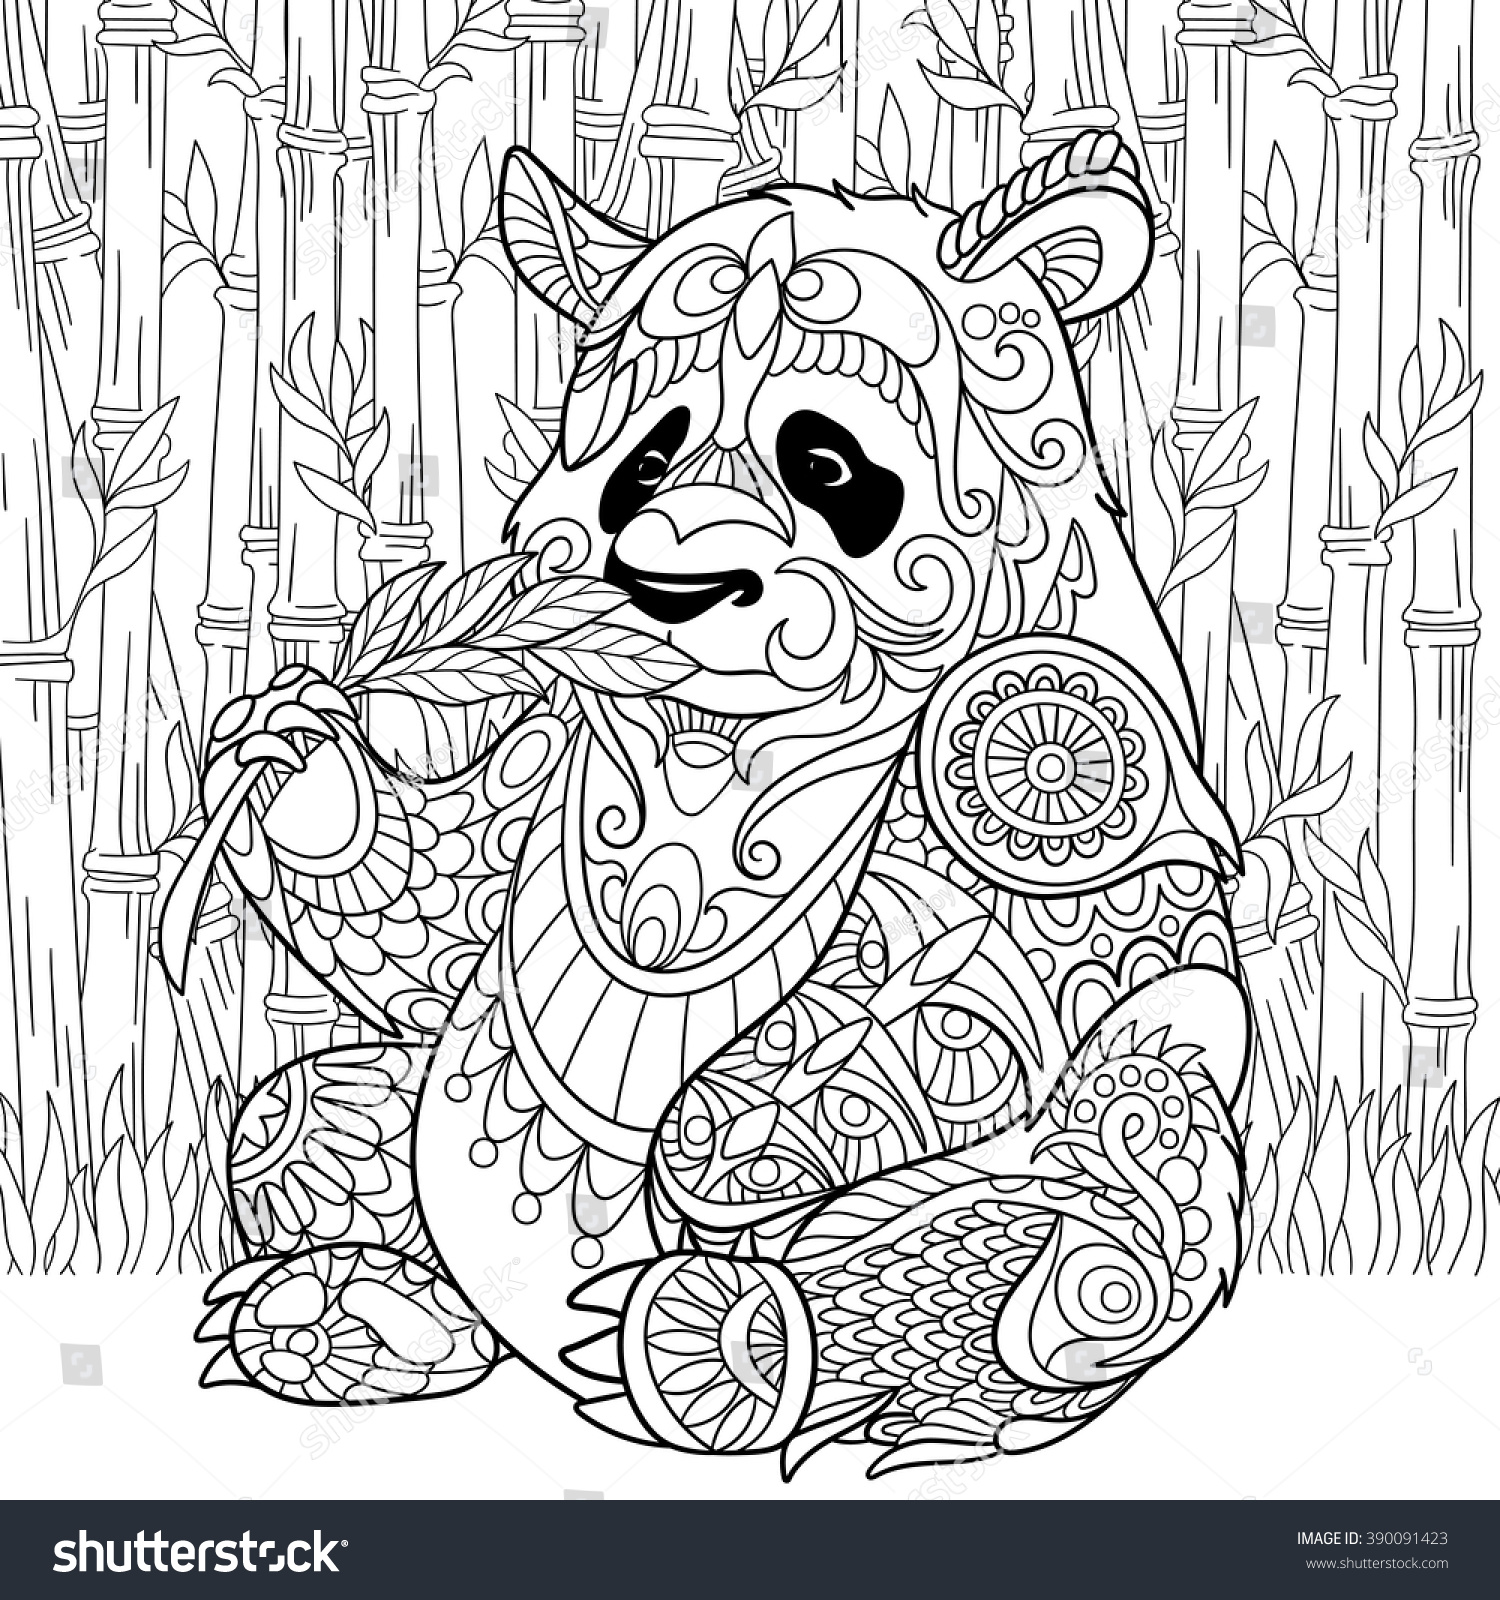 Stress coloring books for adults - Anti Stress Colouring Books For Adults Zentangle Stylized Cartoon Panda Sitting Among Bamboo Stems Sketch